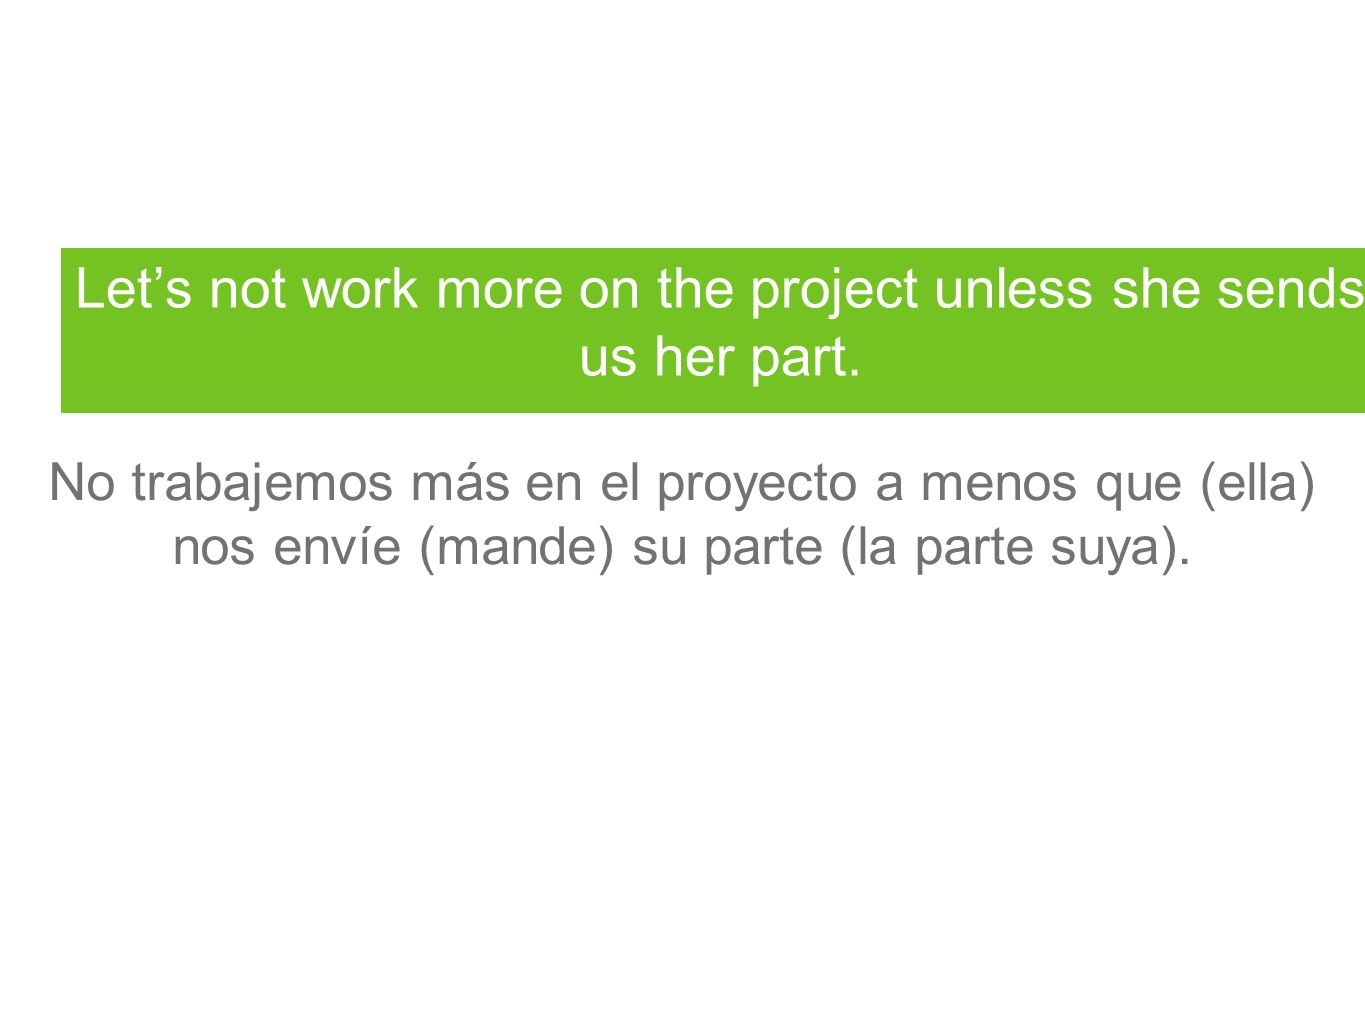 Lets not work more on the project unless she sends us her part.